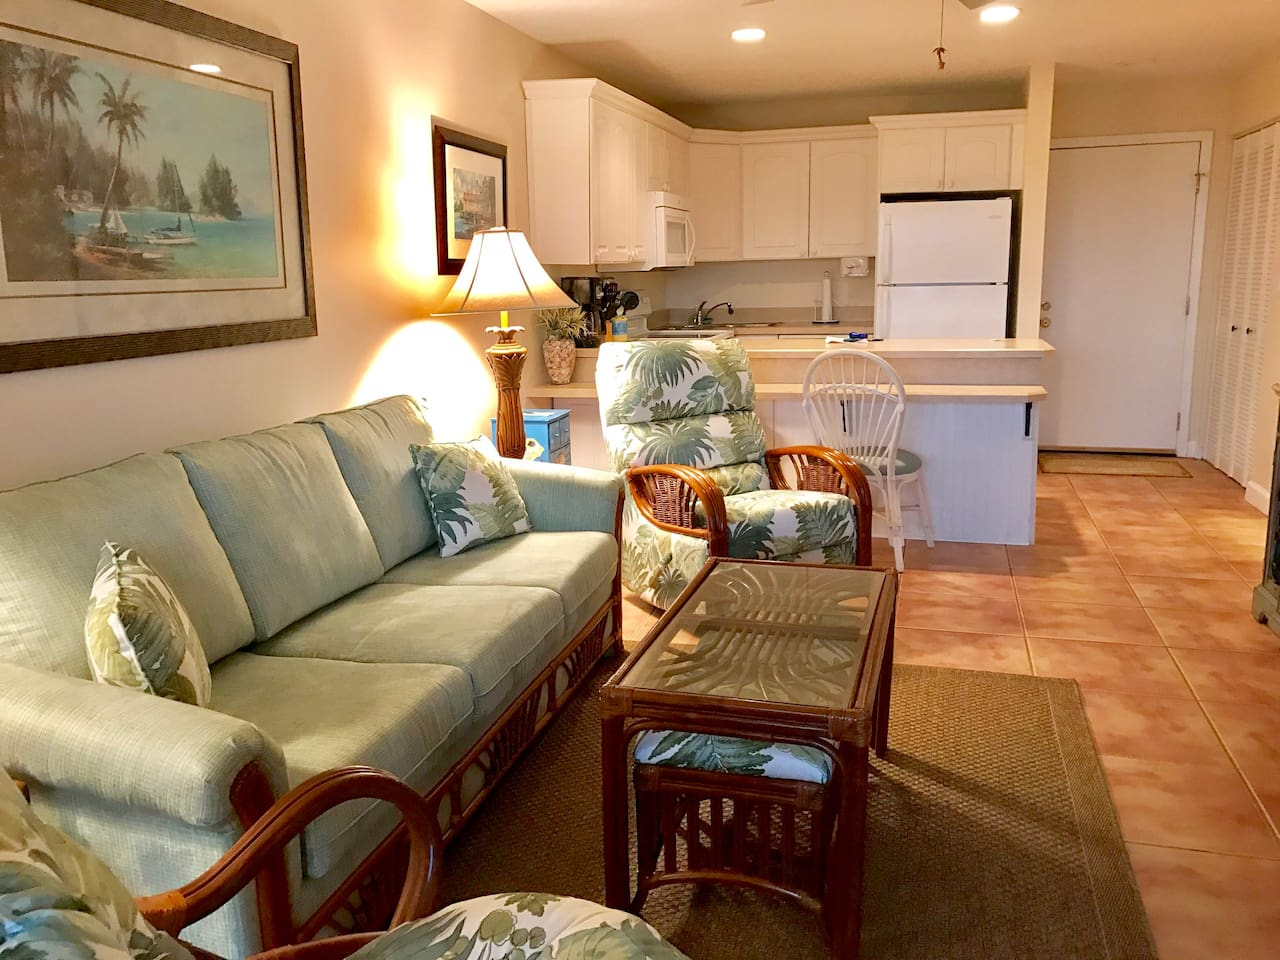 Fantastic Condo, Newly Renovated, Clean, Quiet, Private And Steps Away From The Ocean !